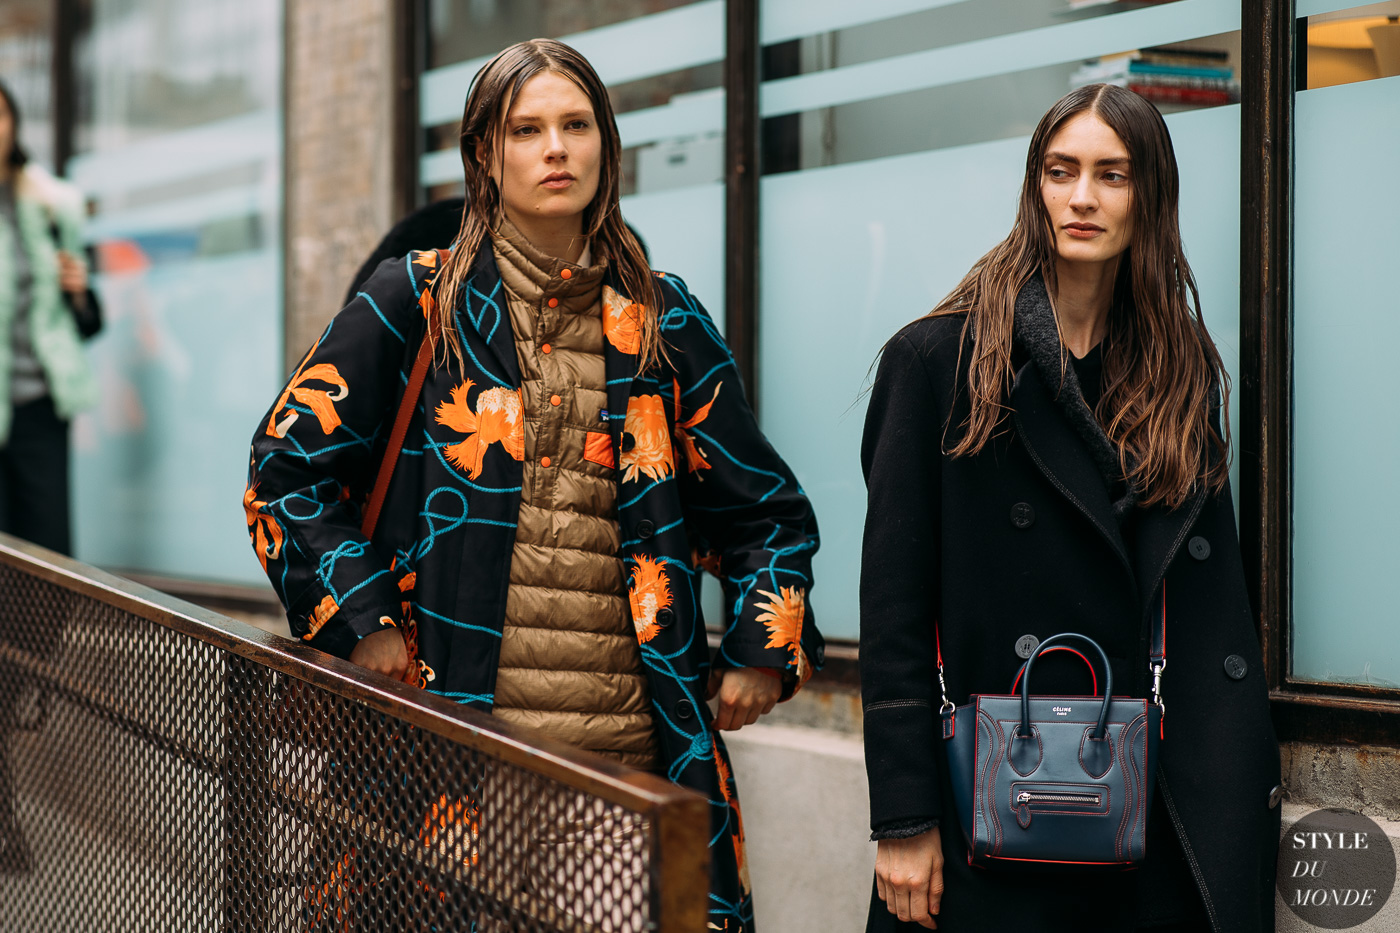 Caroline Brasch Nielsen and Marine Deleeuw by STYLEDUMONDE Street Style Fashion Photography NY FW18 20180212_48A8571